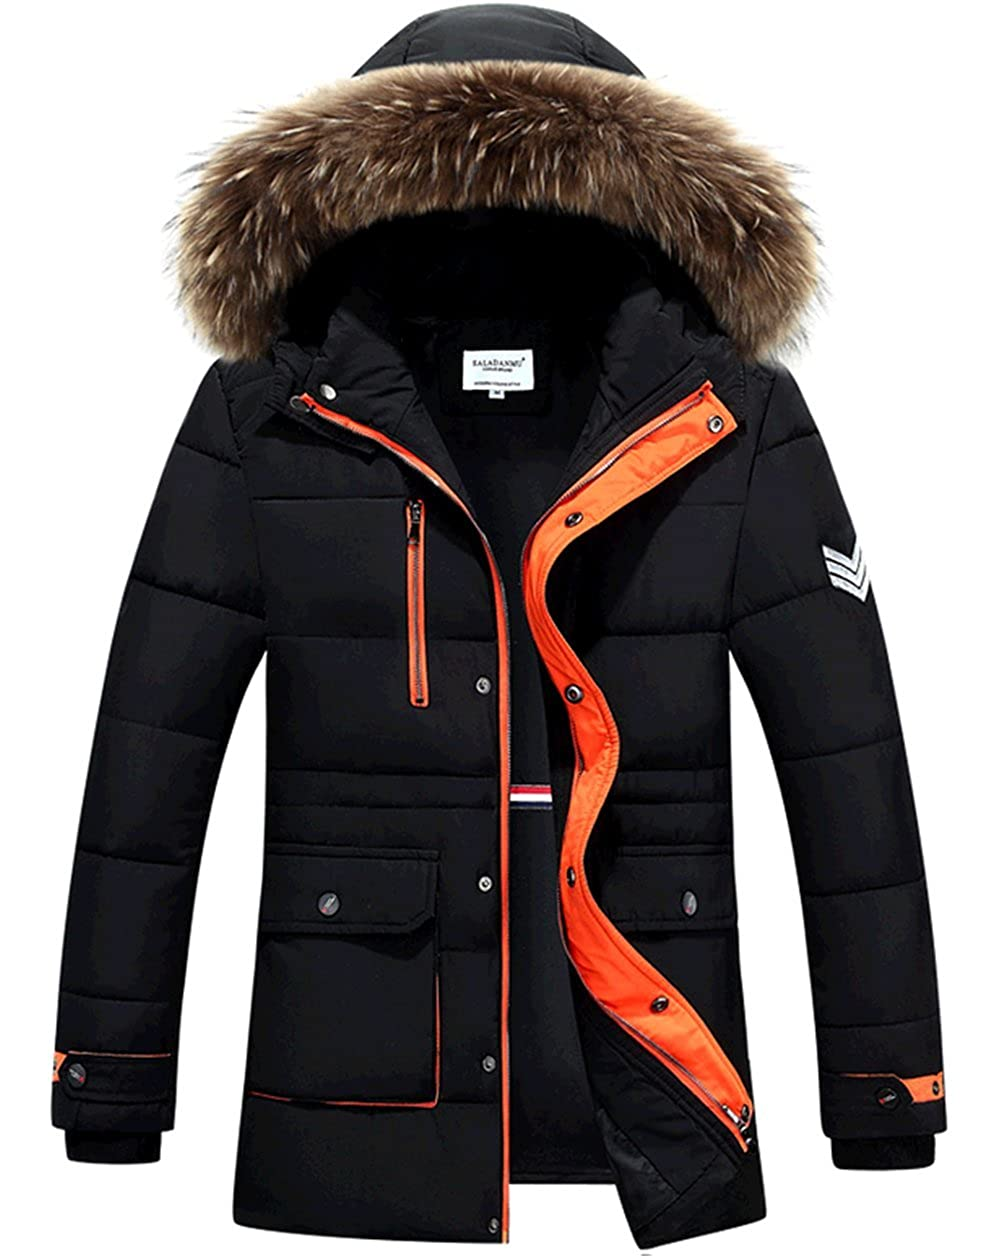 New Mens Fashion Hooded Long Thick Cotton Down Jacket K3K Hot